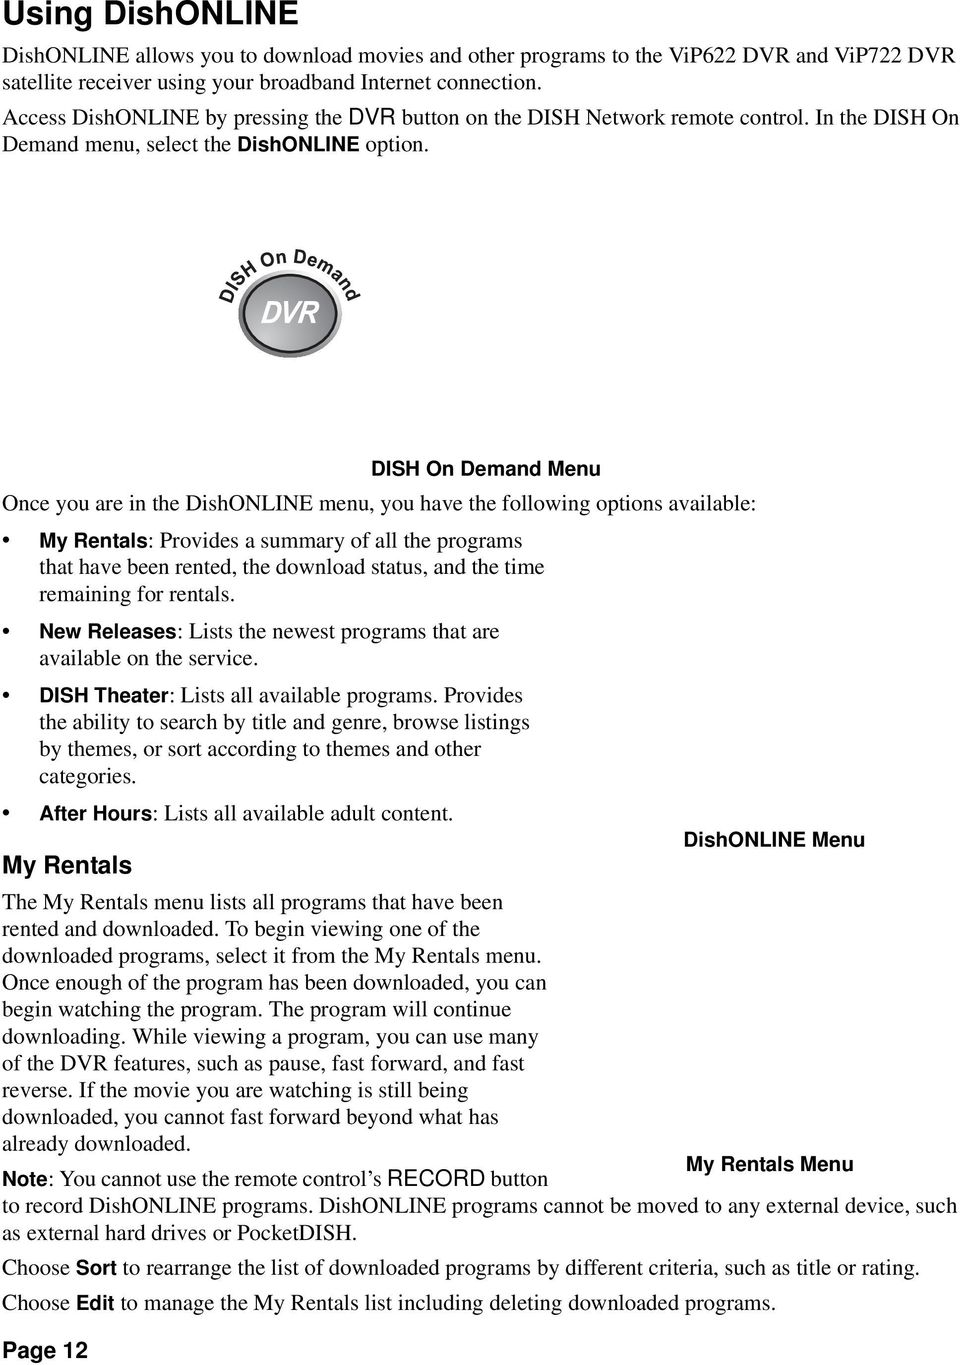 Home Network Installation Instructions Pdf Vip 722 Wiring Diagram Page 12 Dish On Demand Menu Once You Are In The Dishonline Have